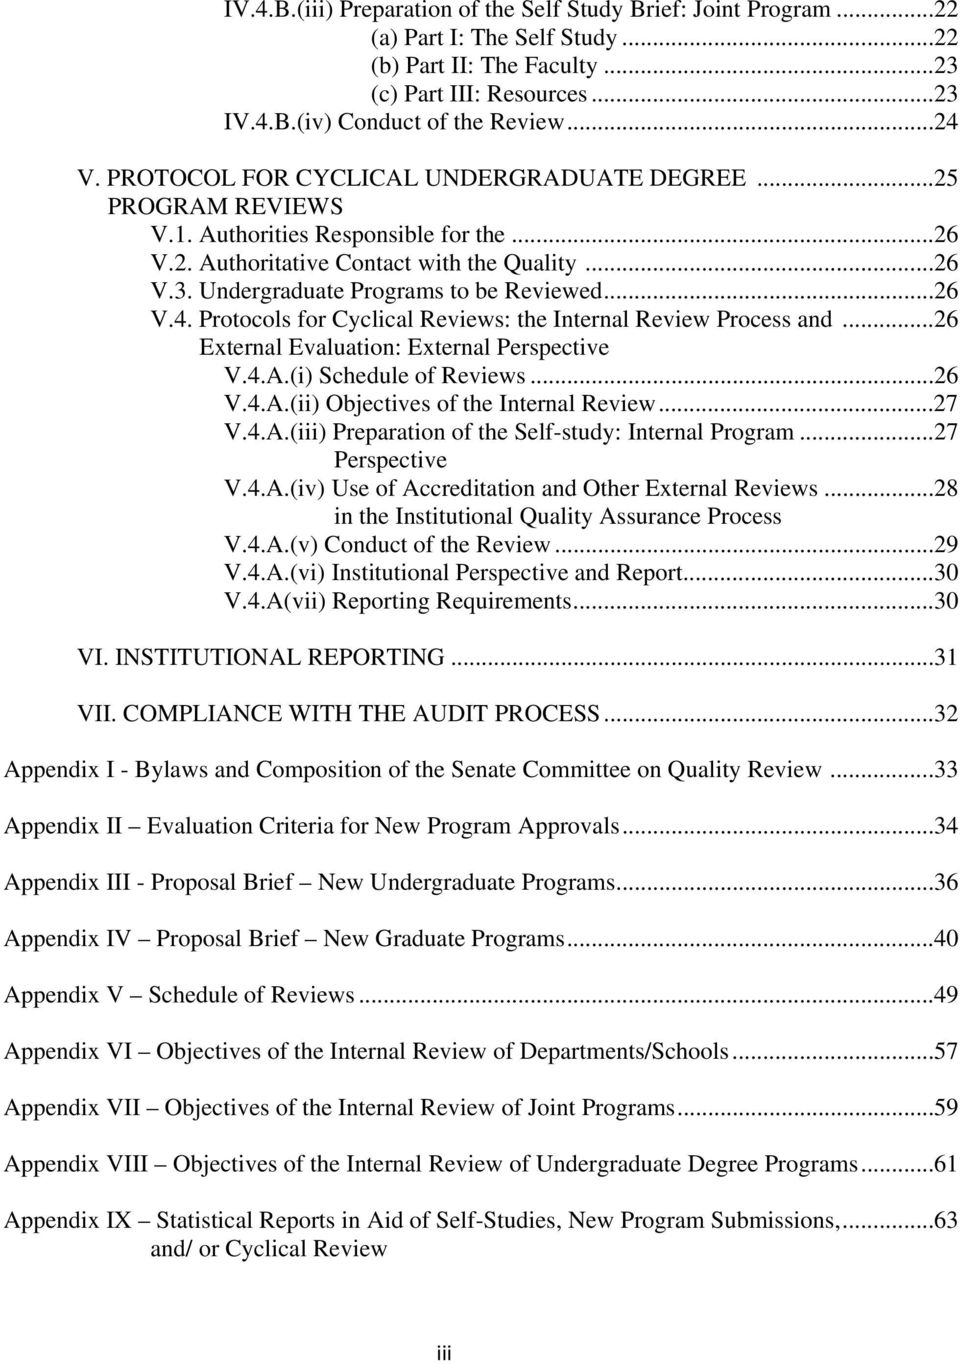 ..26 V.4. Protocols for Cyclical Reviews: the Internal Review Process and...26 External Evaluation: External Perspective V.4.A.(i) Schedule of Reviews...26 V.4.A.(ii) Objectives of the Internal Review.